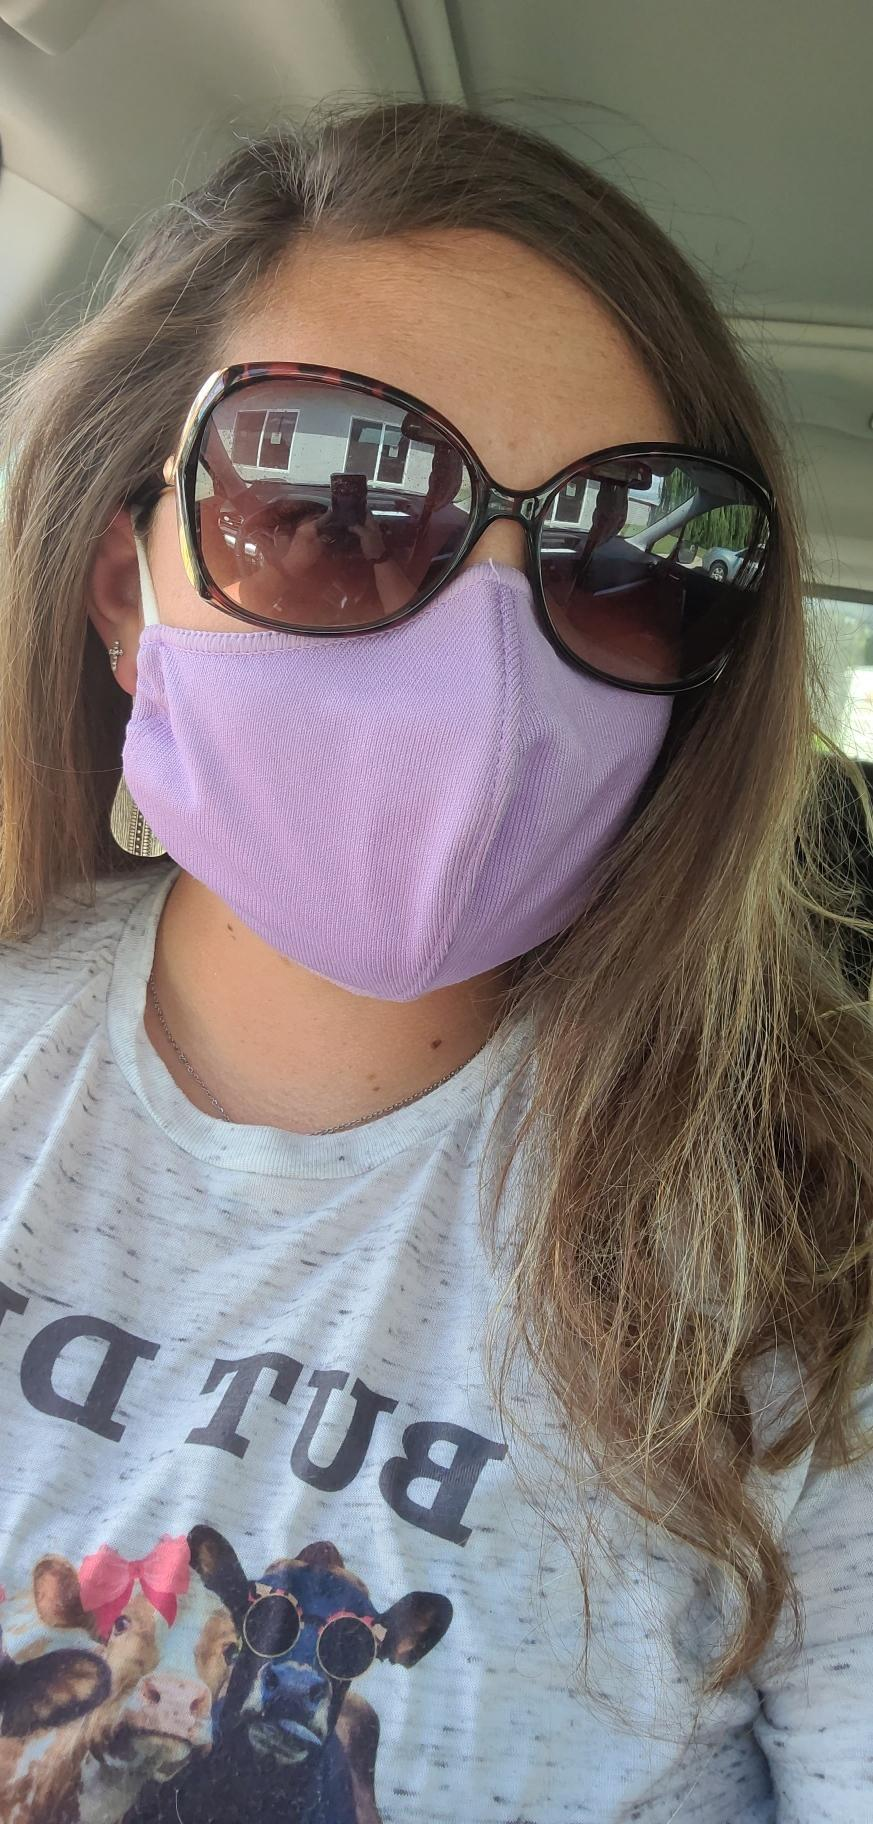 staff member close up wearing pink mask